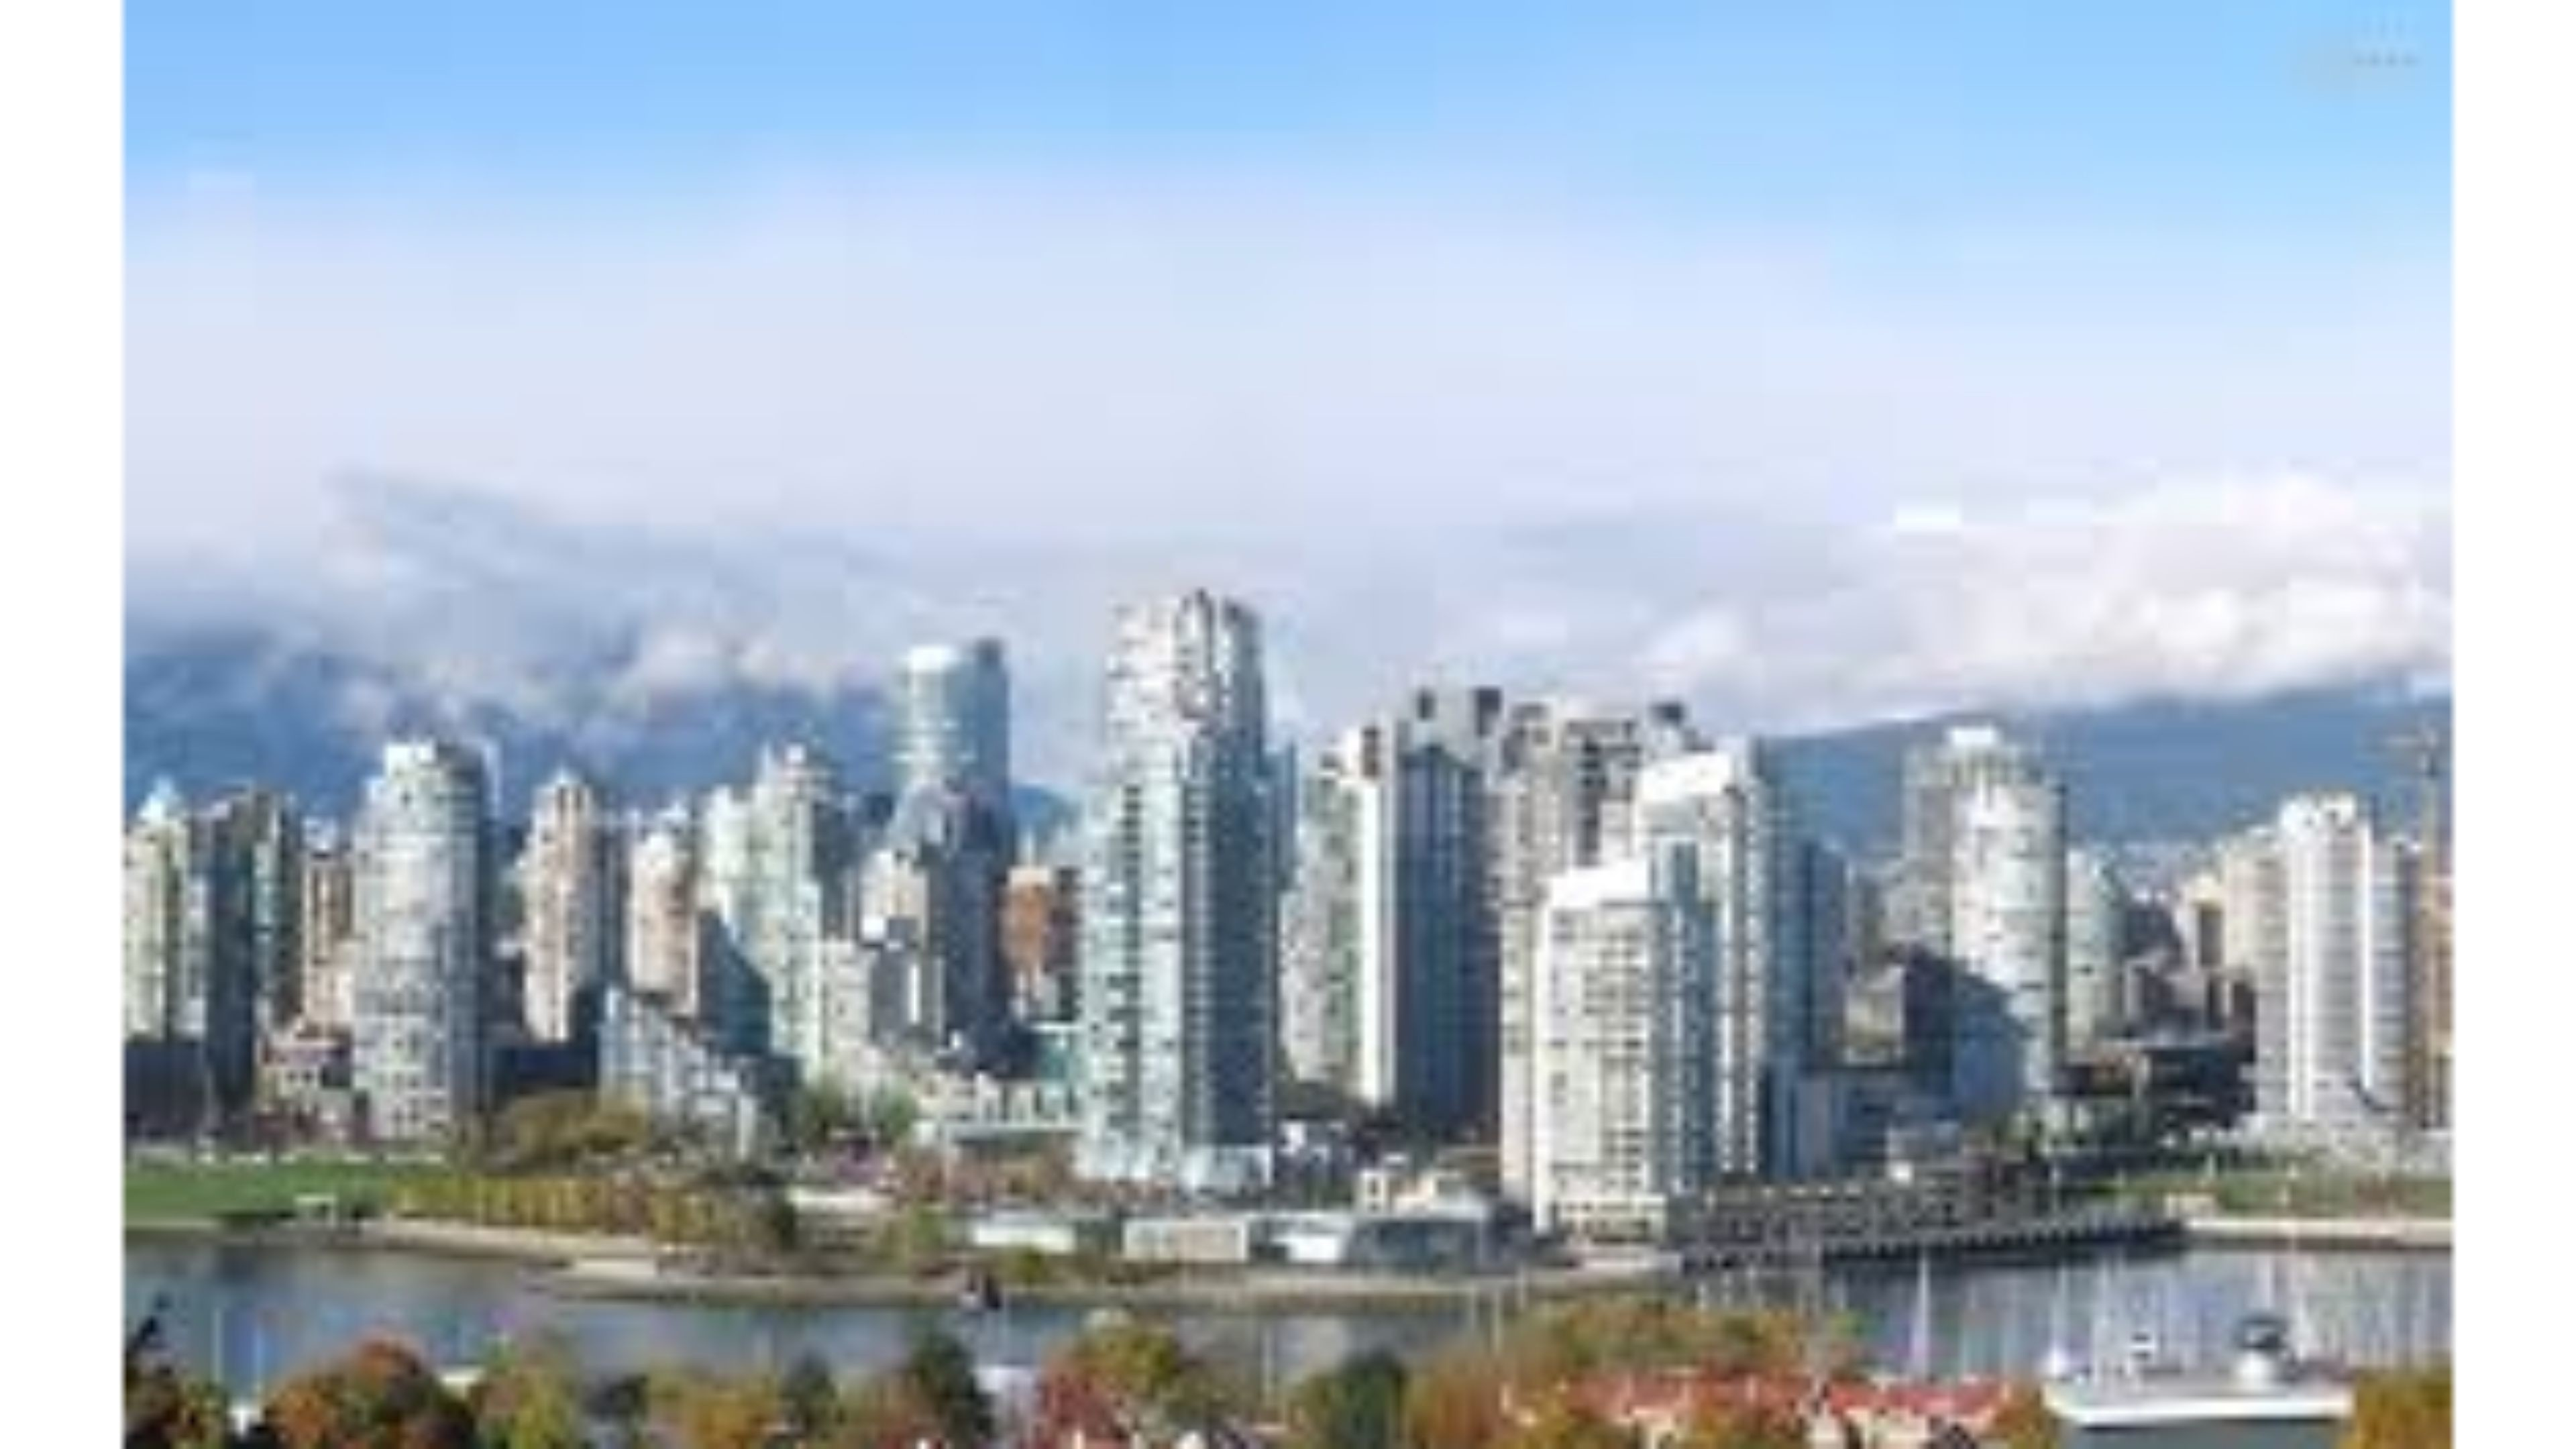 3840x2160 Skyline 4K Vancouver Canada Wallpaper